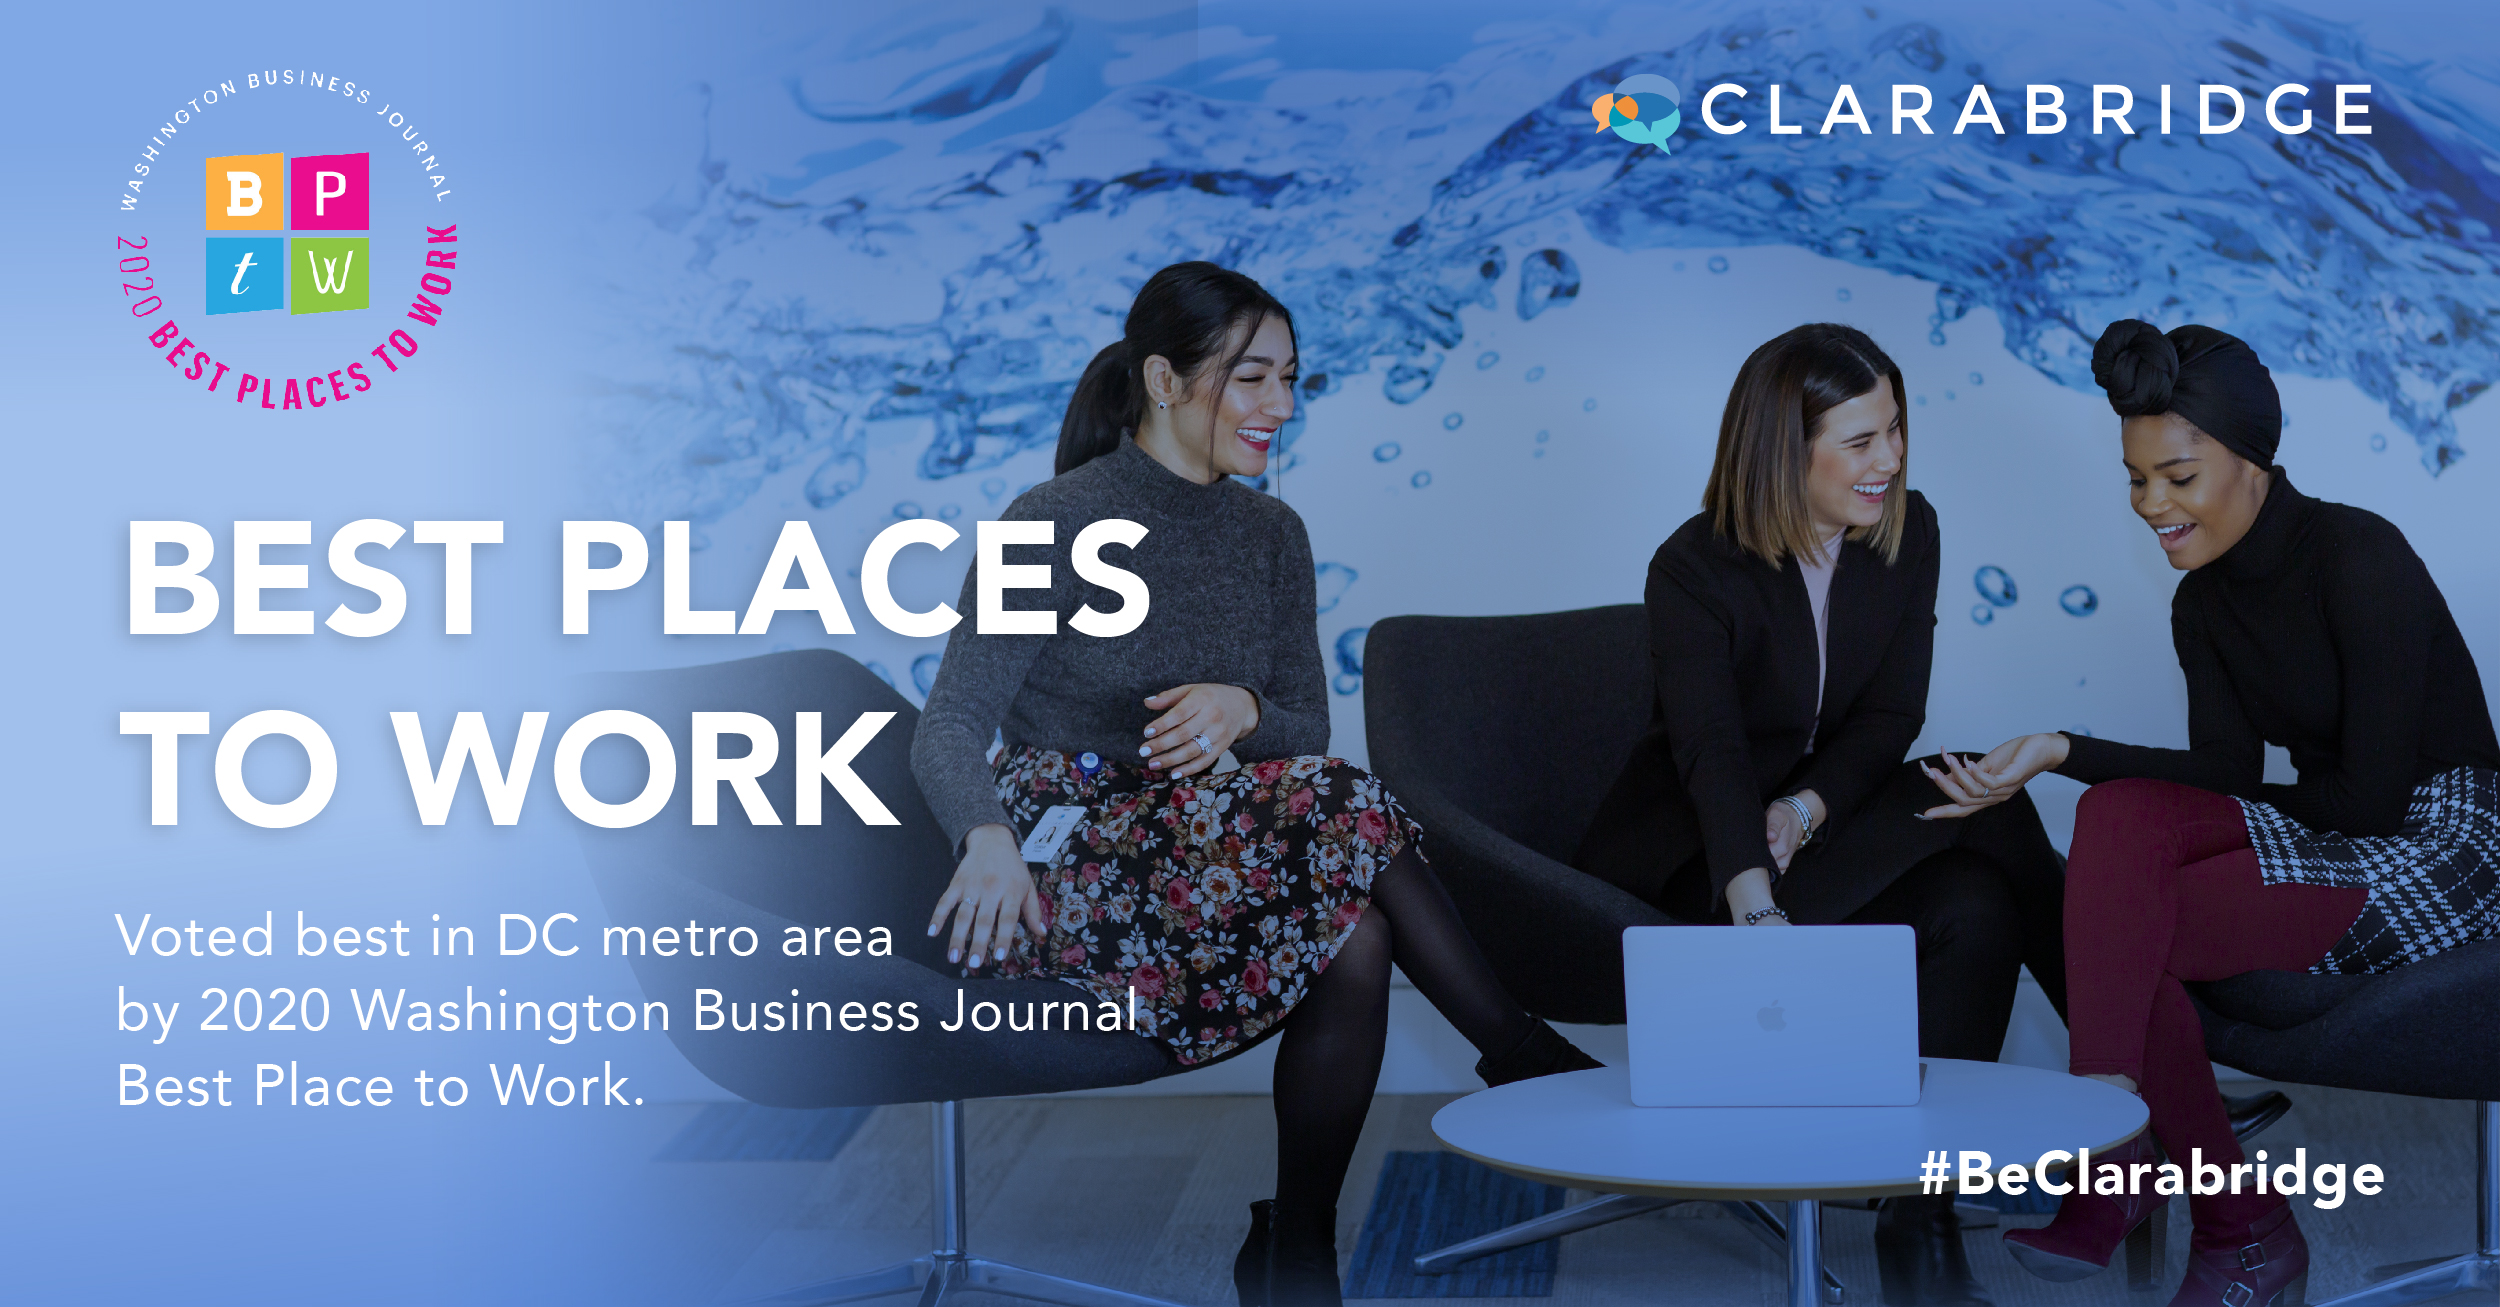 Clarabridge named best places to work in 2020 by WBJ graphic